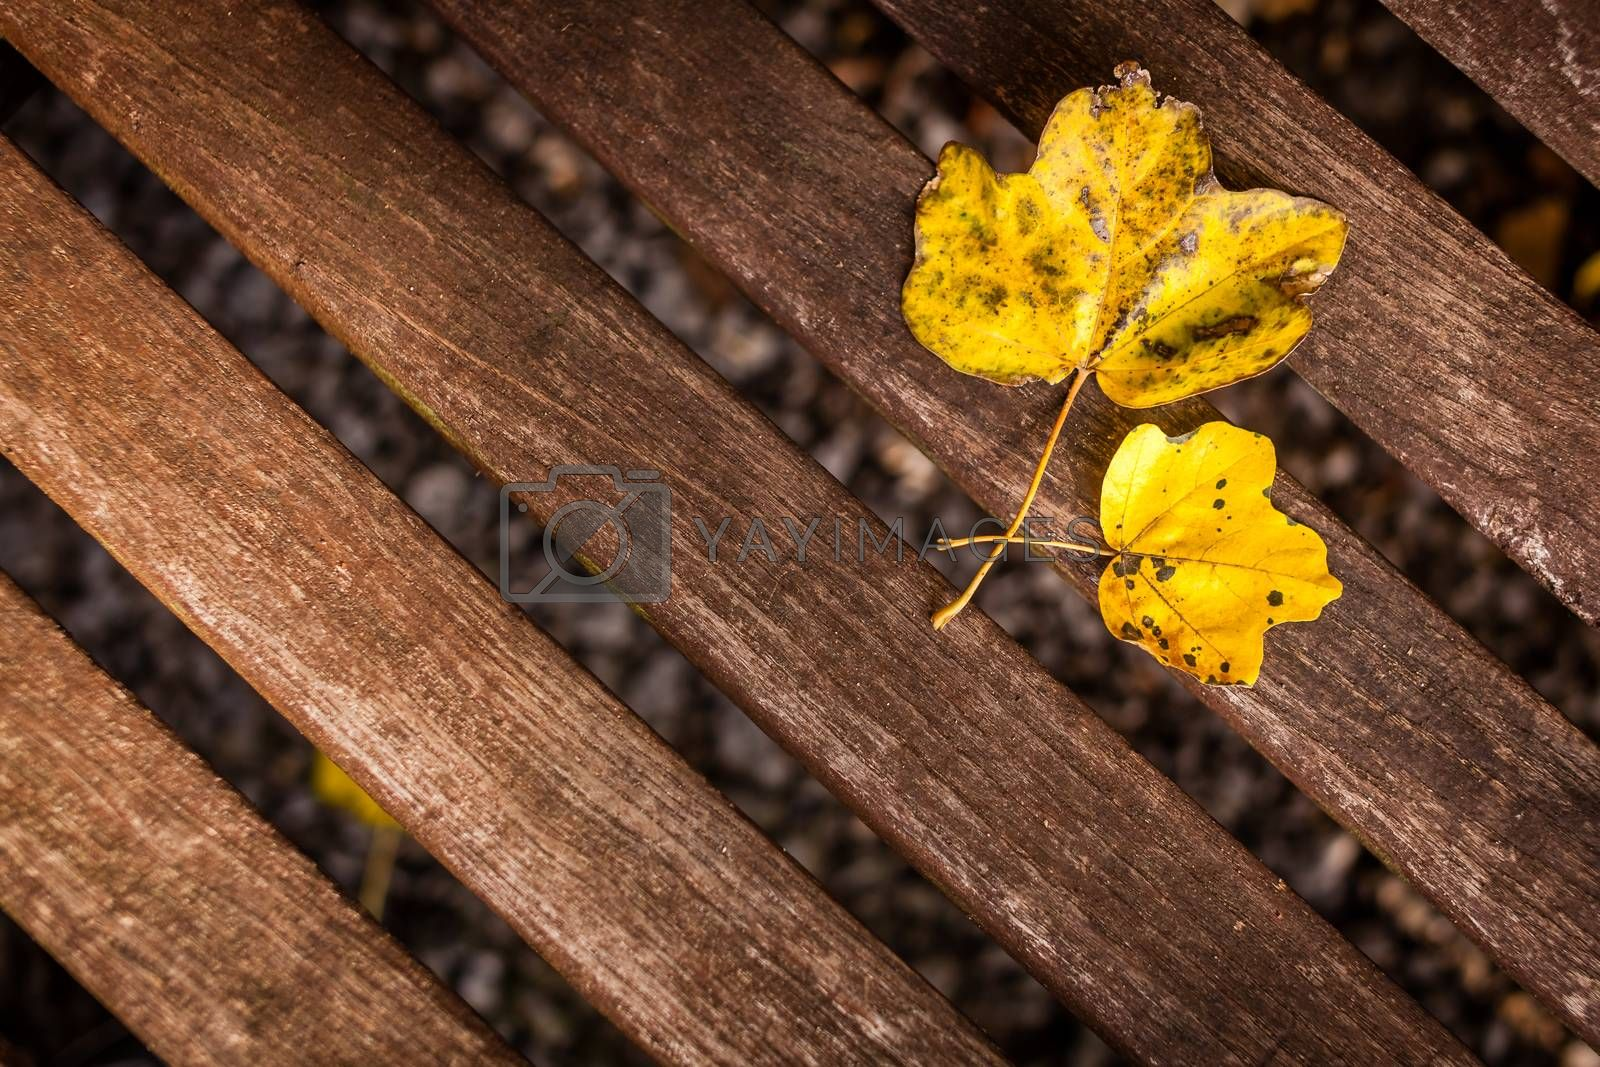 Two yellow leaves on a wooden table